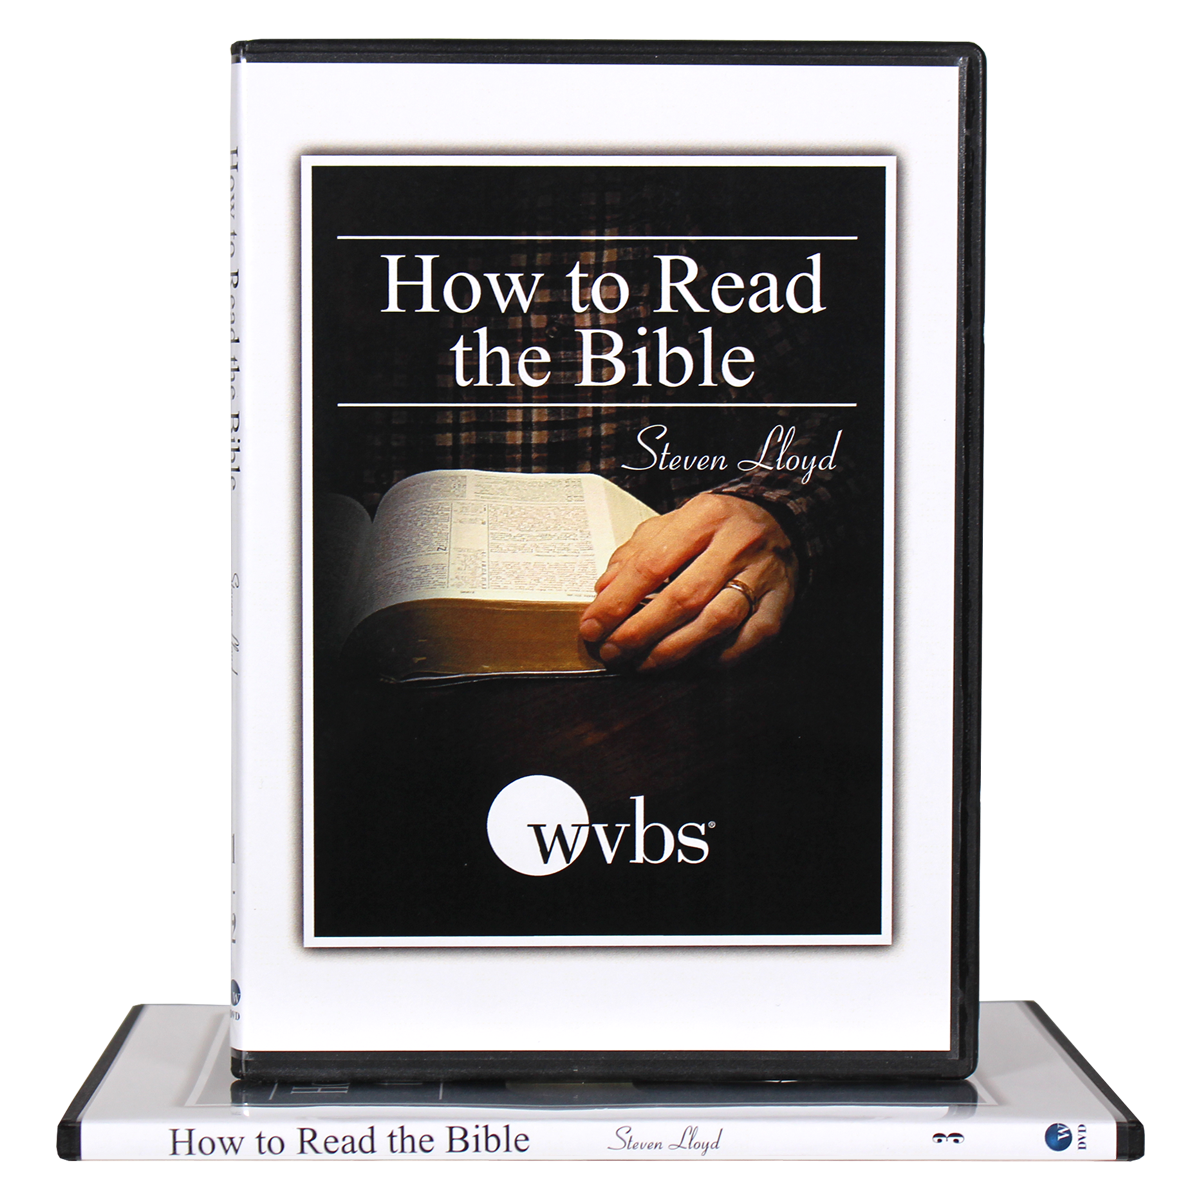 How to the Read the Bible